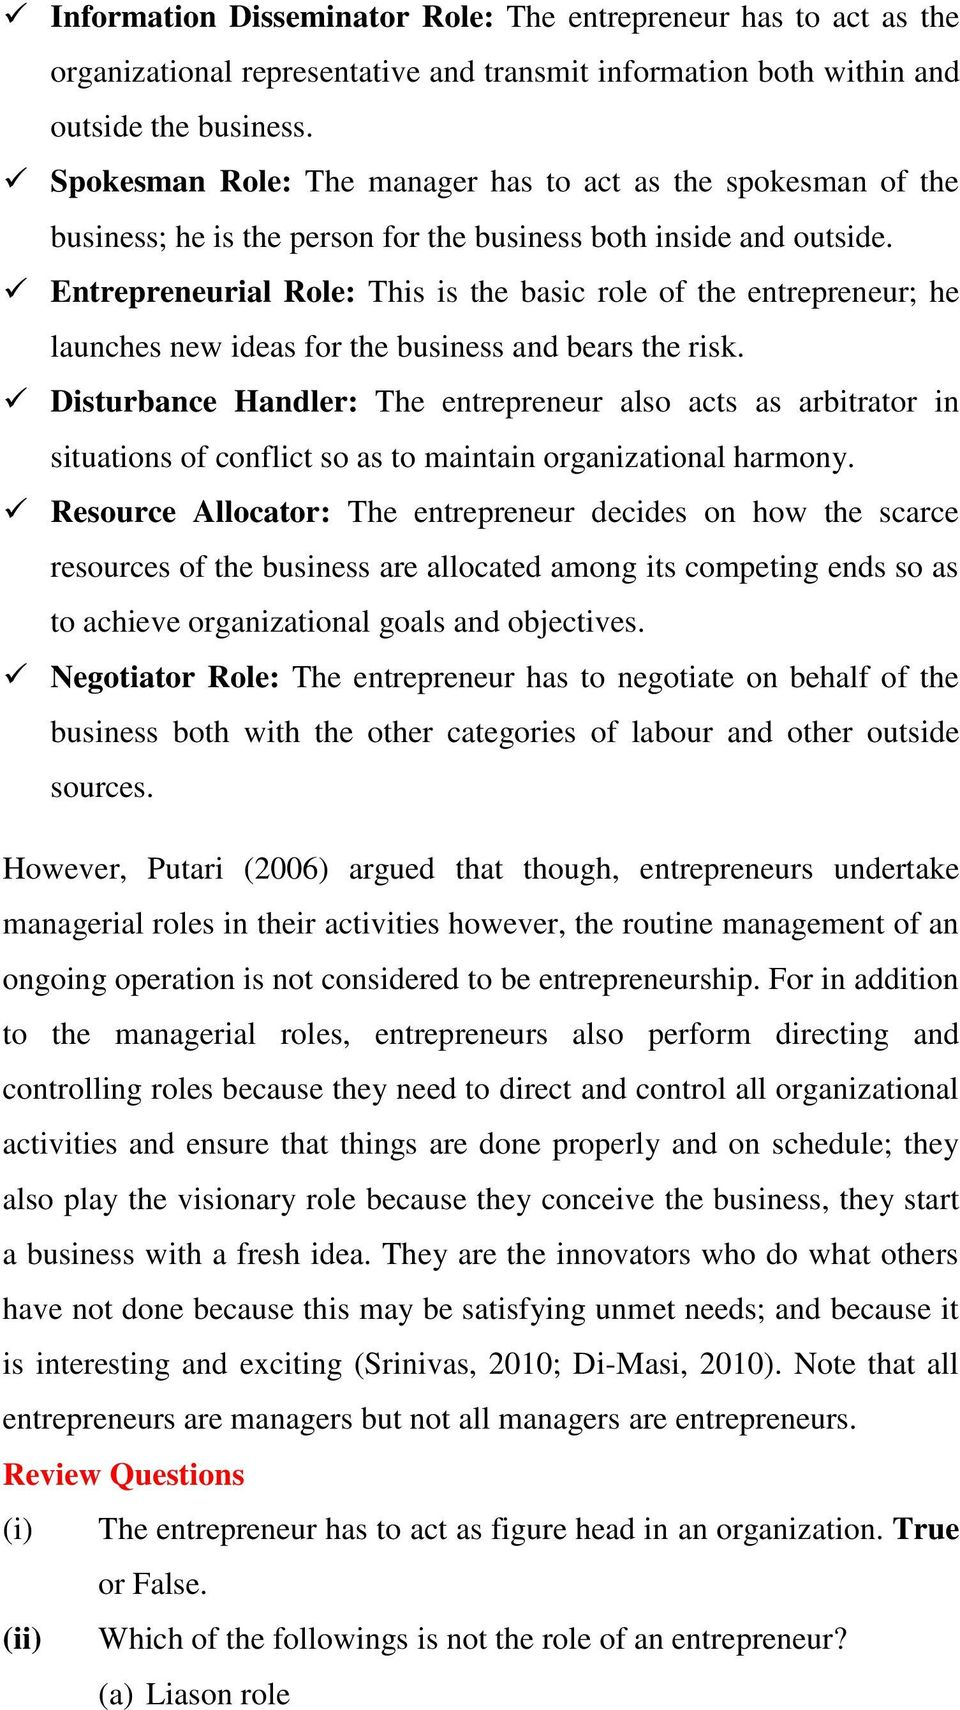 Module one theory and concept of entrepreneurship studies learning entrepreneurial role this is the basic role of the entrepreneur he launches new ideas fandeluxe Images